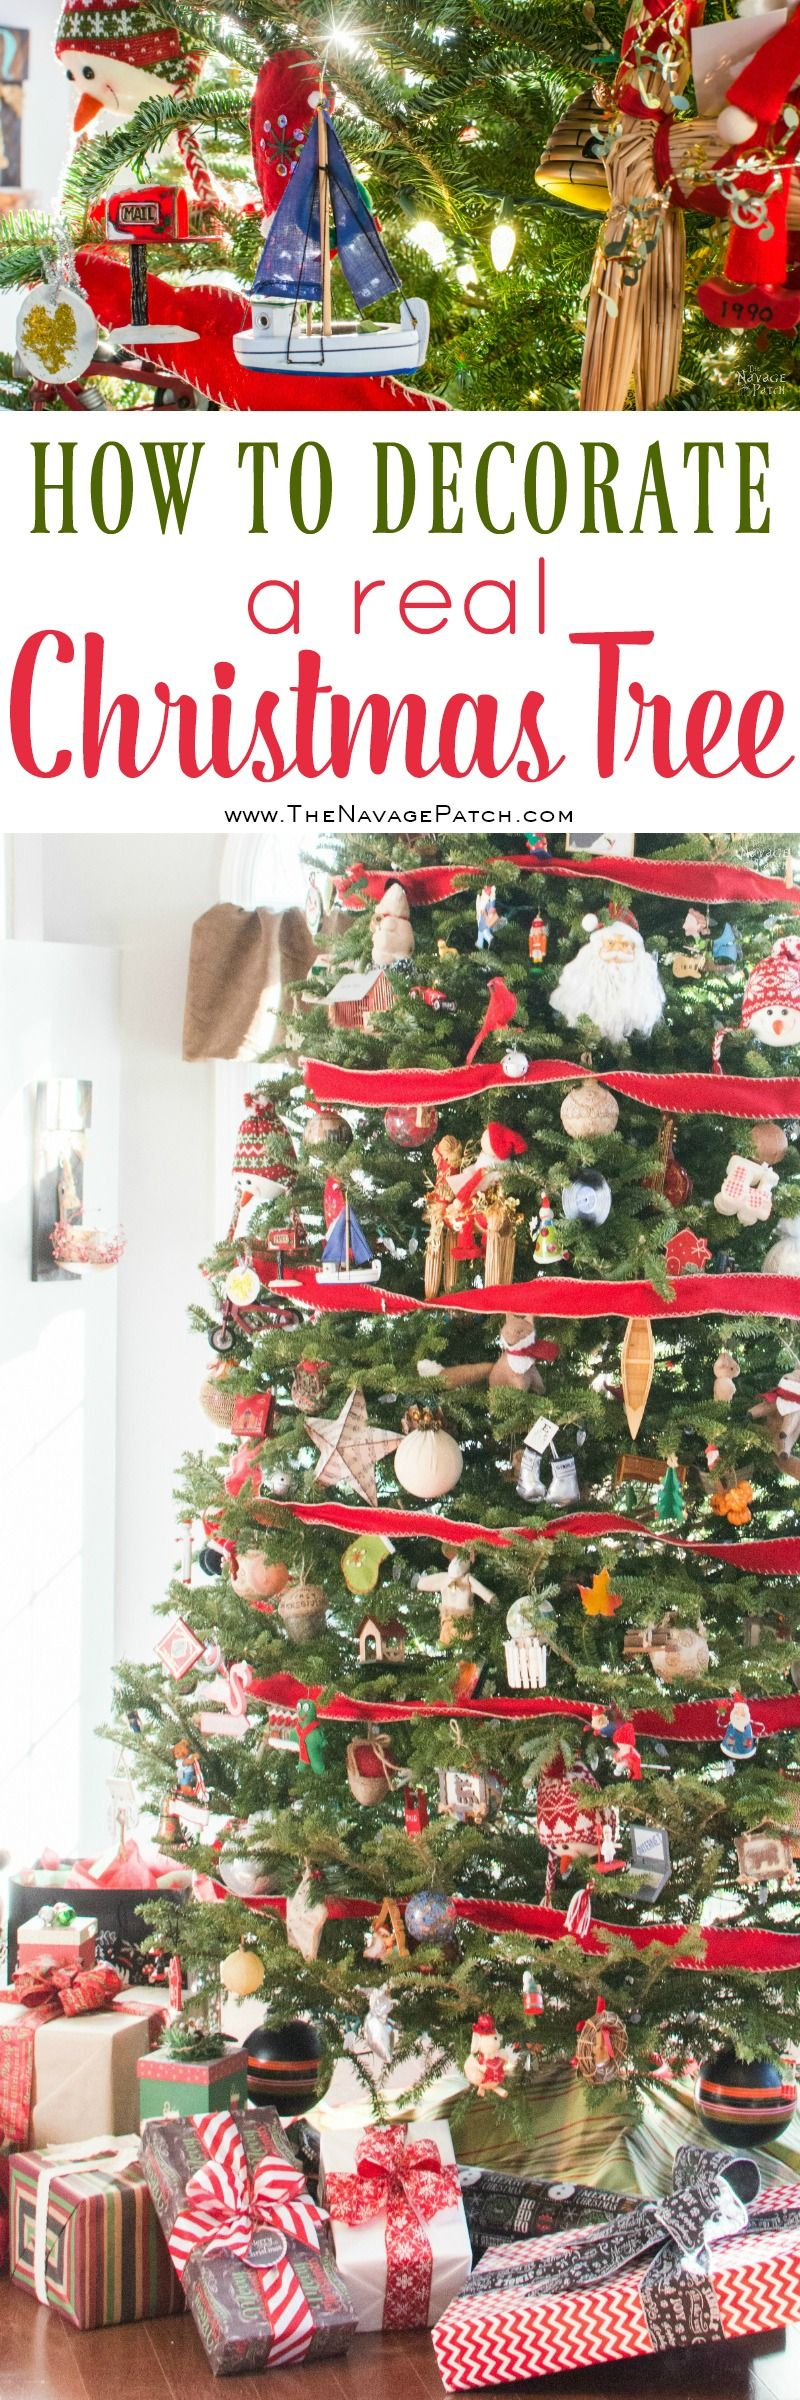 Trimming a sentimental Christmas tree | Christmas tree decoration tips | How to decorate a real Christmas Tree | How to prune your Christmas tree to give the perfect shape | DIY sentimental Christmas ornaments | Christmas traditions | Festive holiday decoration | TheNavagePatch.com